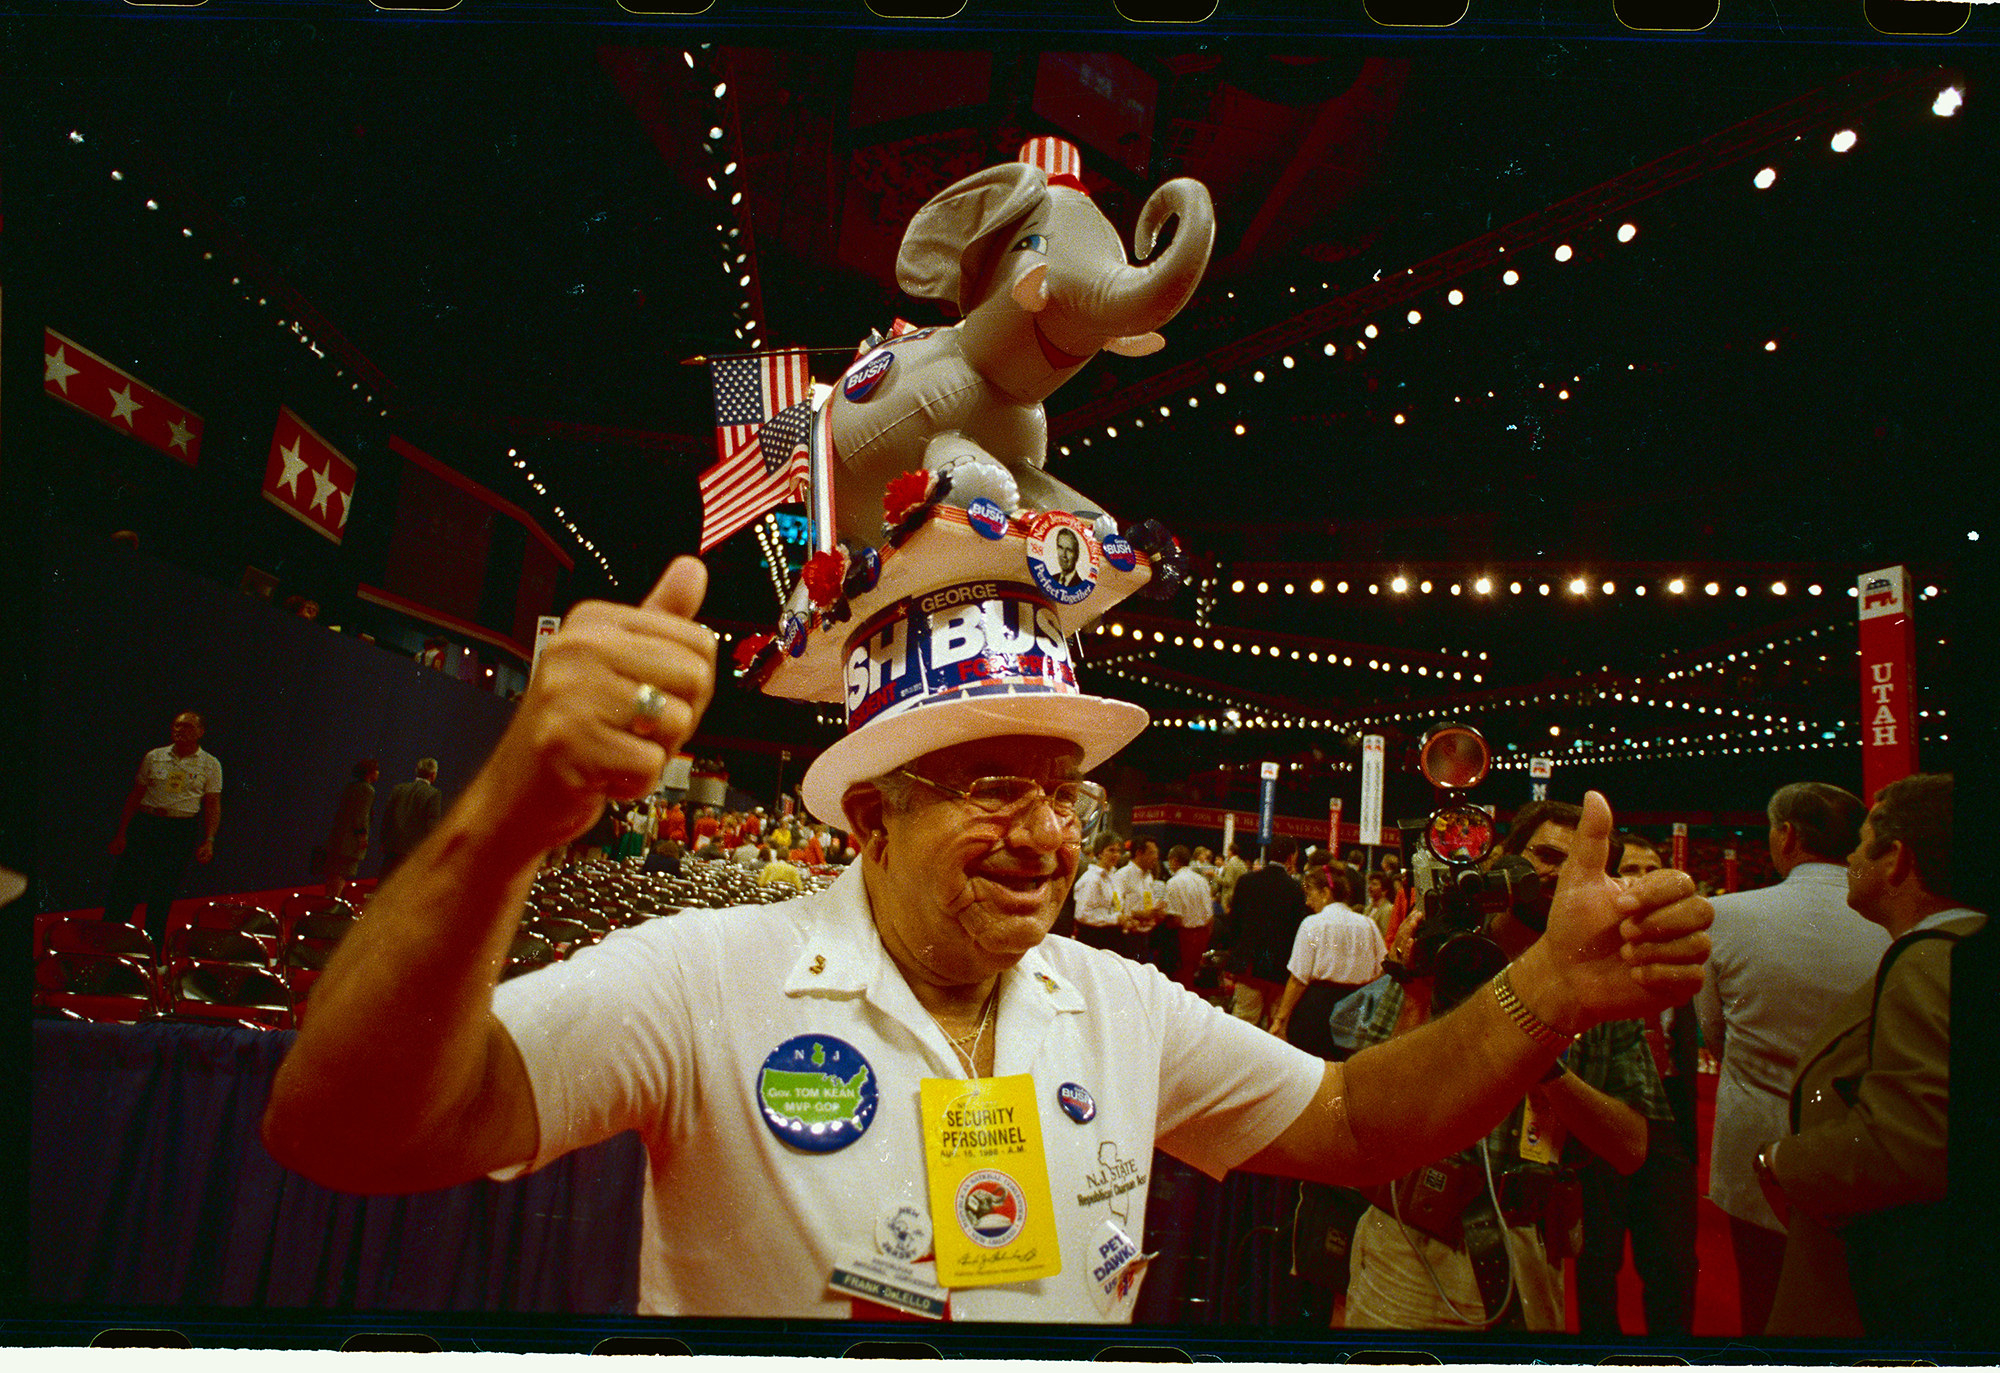 An older man wtih a hat that has an elephant on top that says bush  gives the thumbs up